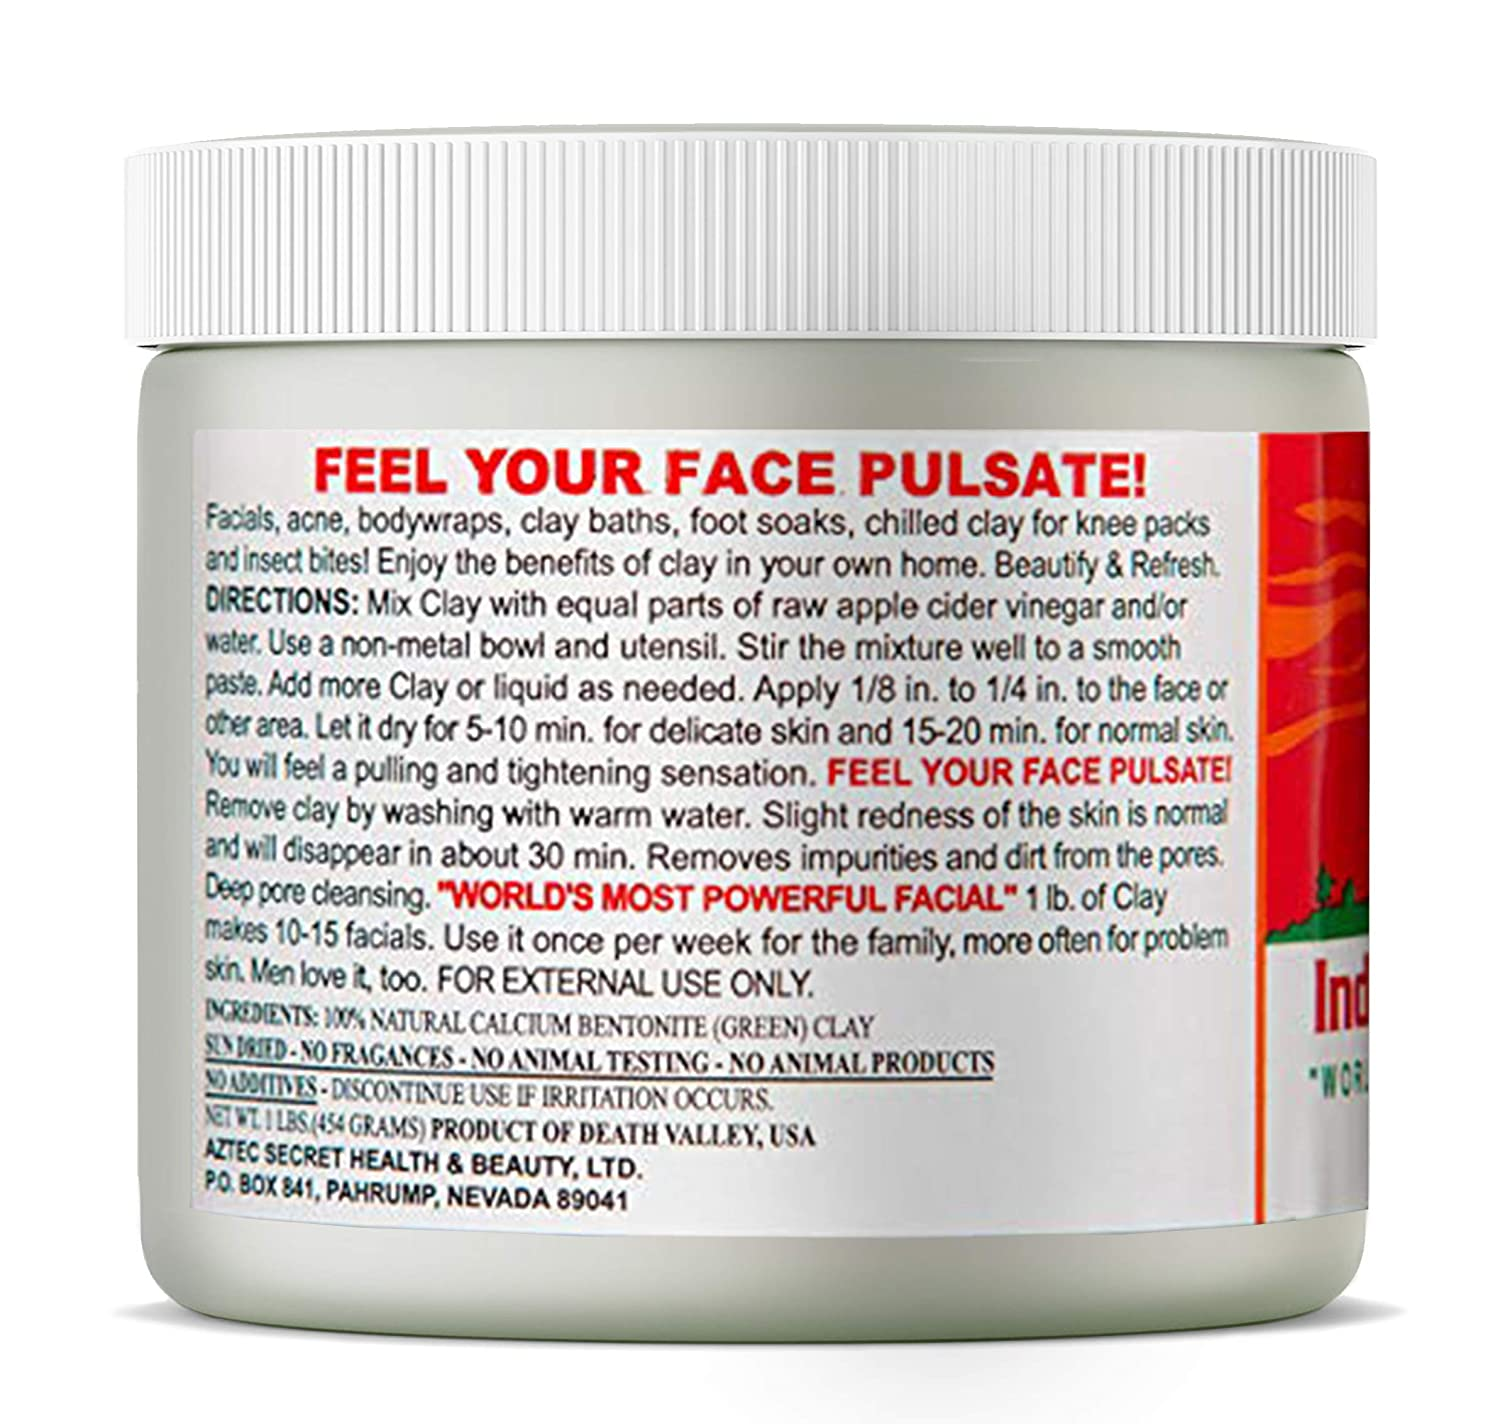 Aztec Secret Indian Healing Clay Facial Treatment, Body Mask Deep Pore Cleansing 1 Pound